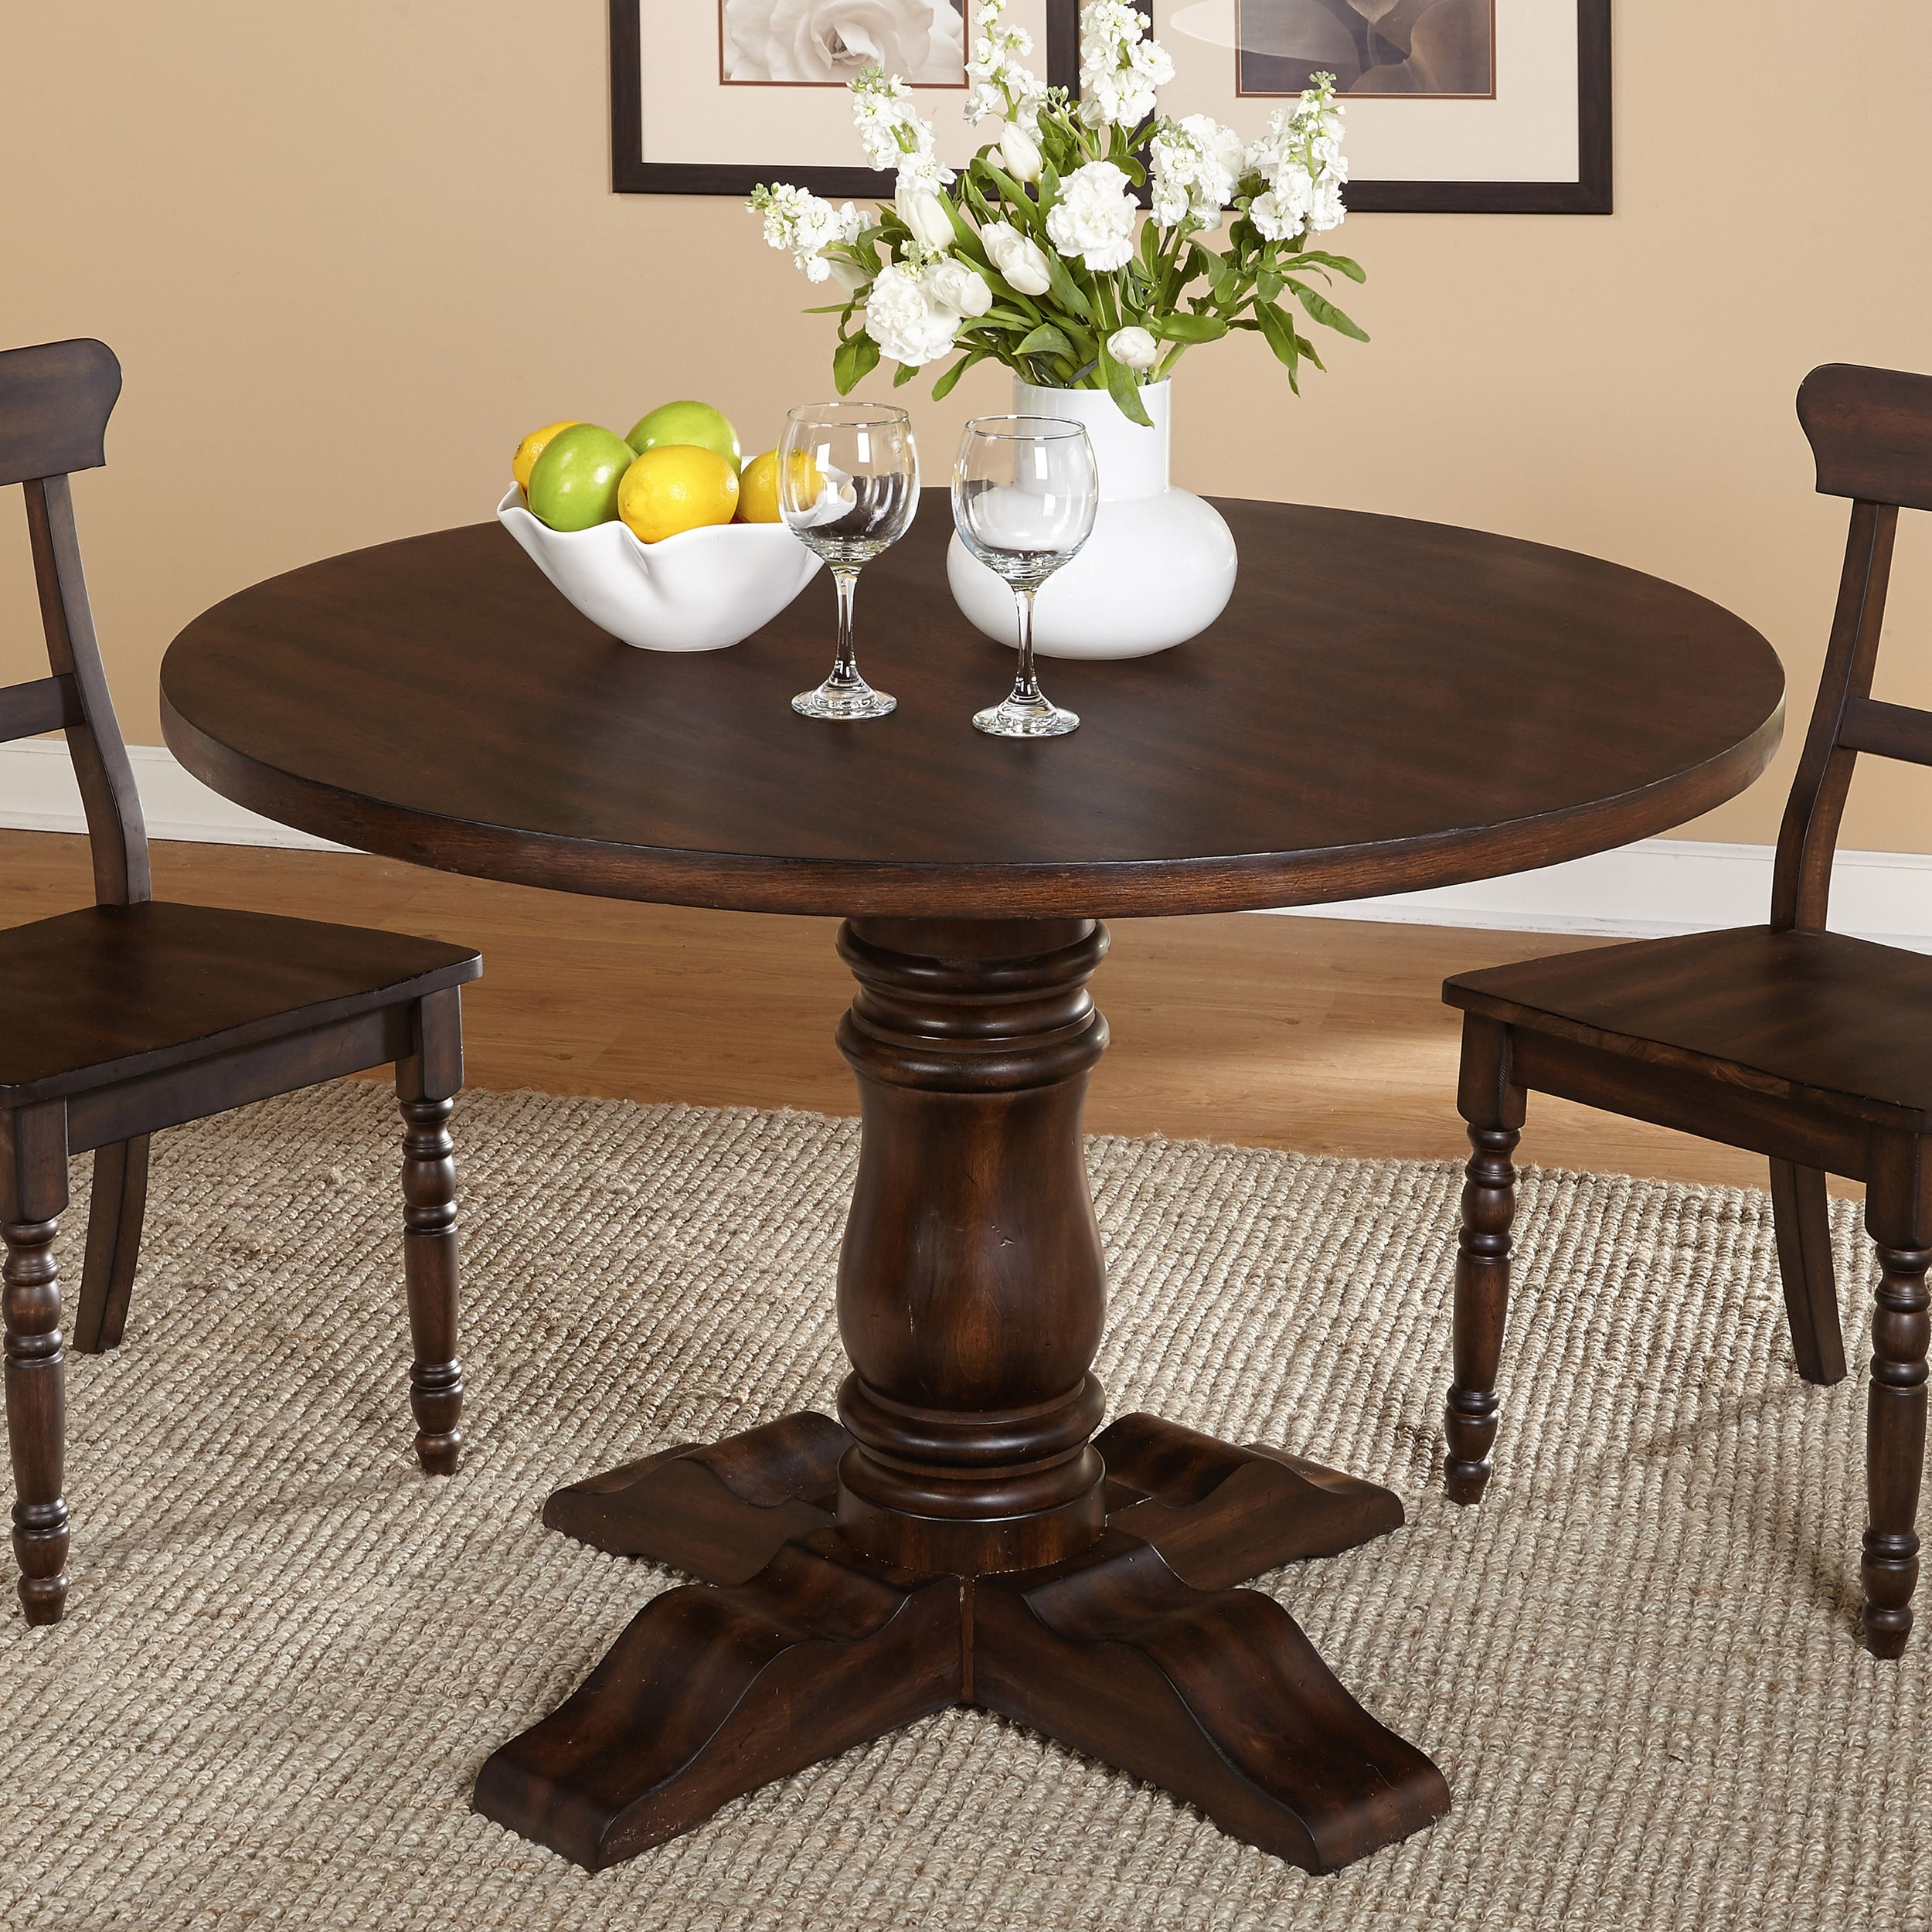 Simple Living Muses Pedestal Table (Muses Pedestal Table,...